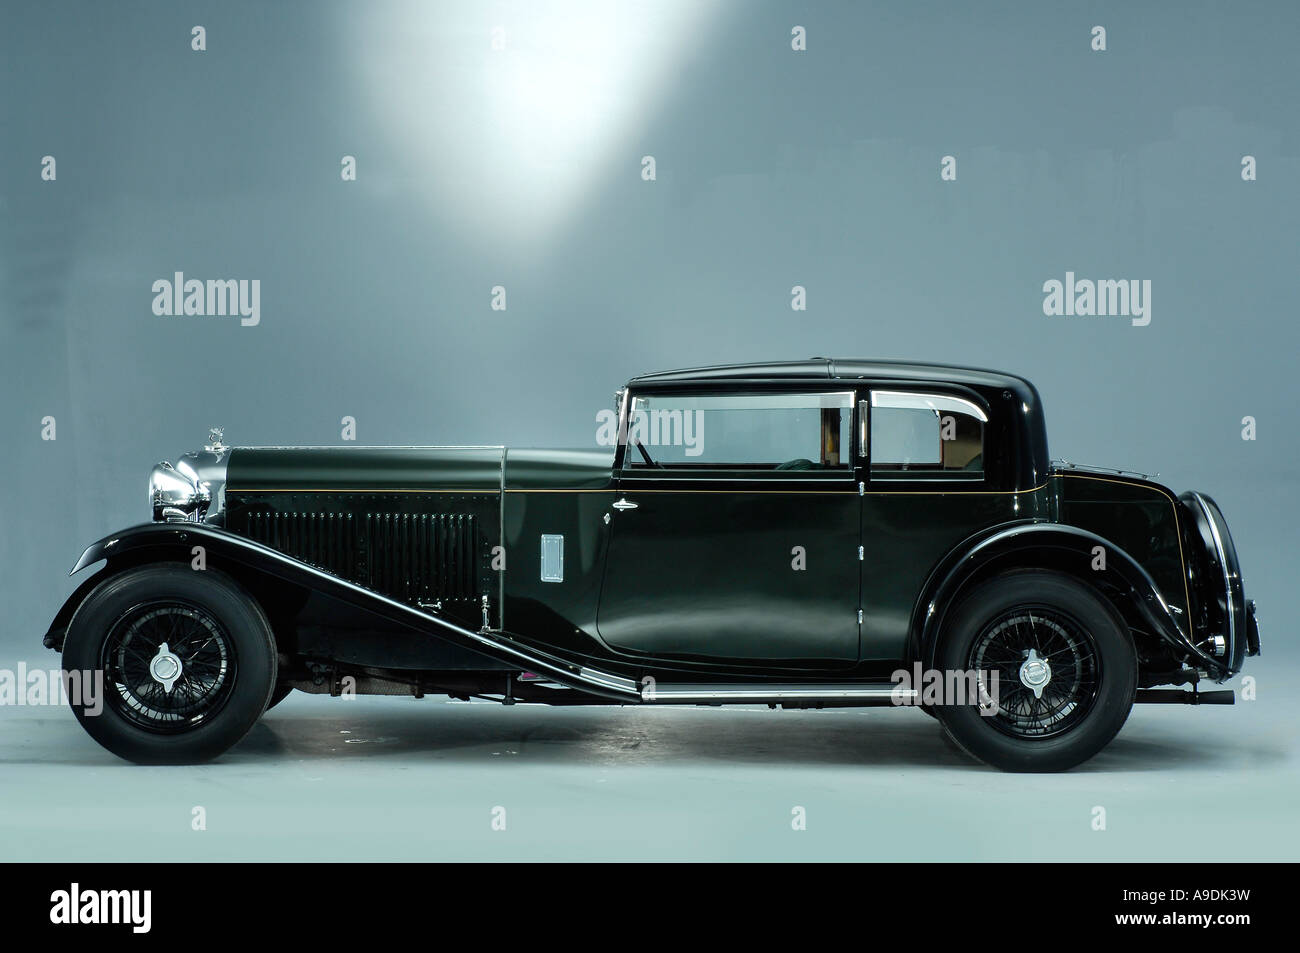 Fixed Head Coupé Stock Photos & Fixed Head Coupé Stock Images - Alamy